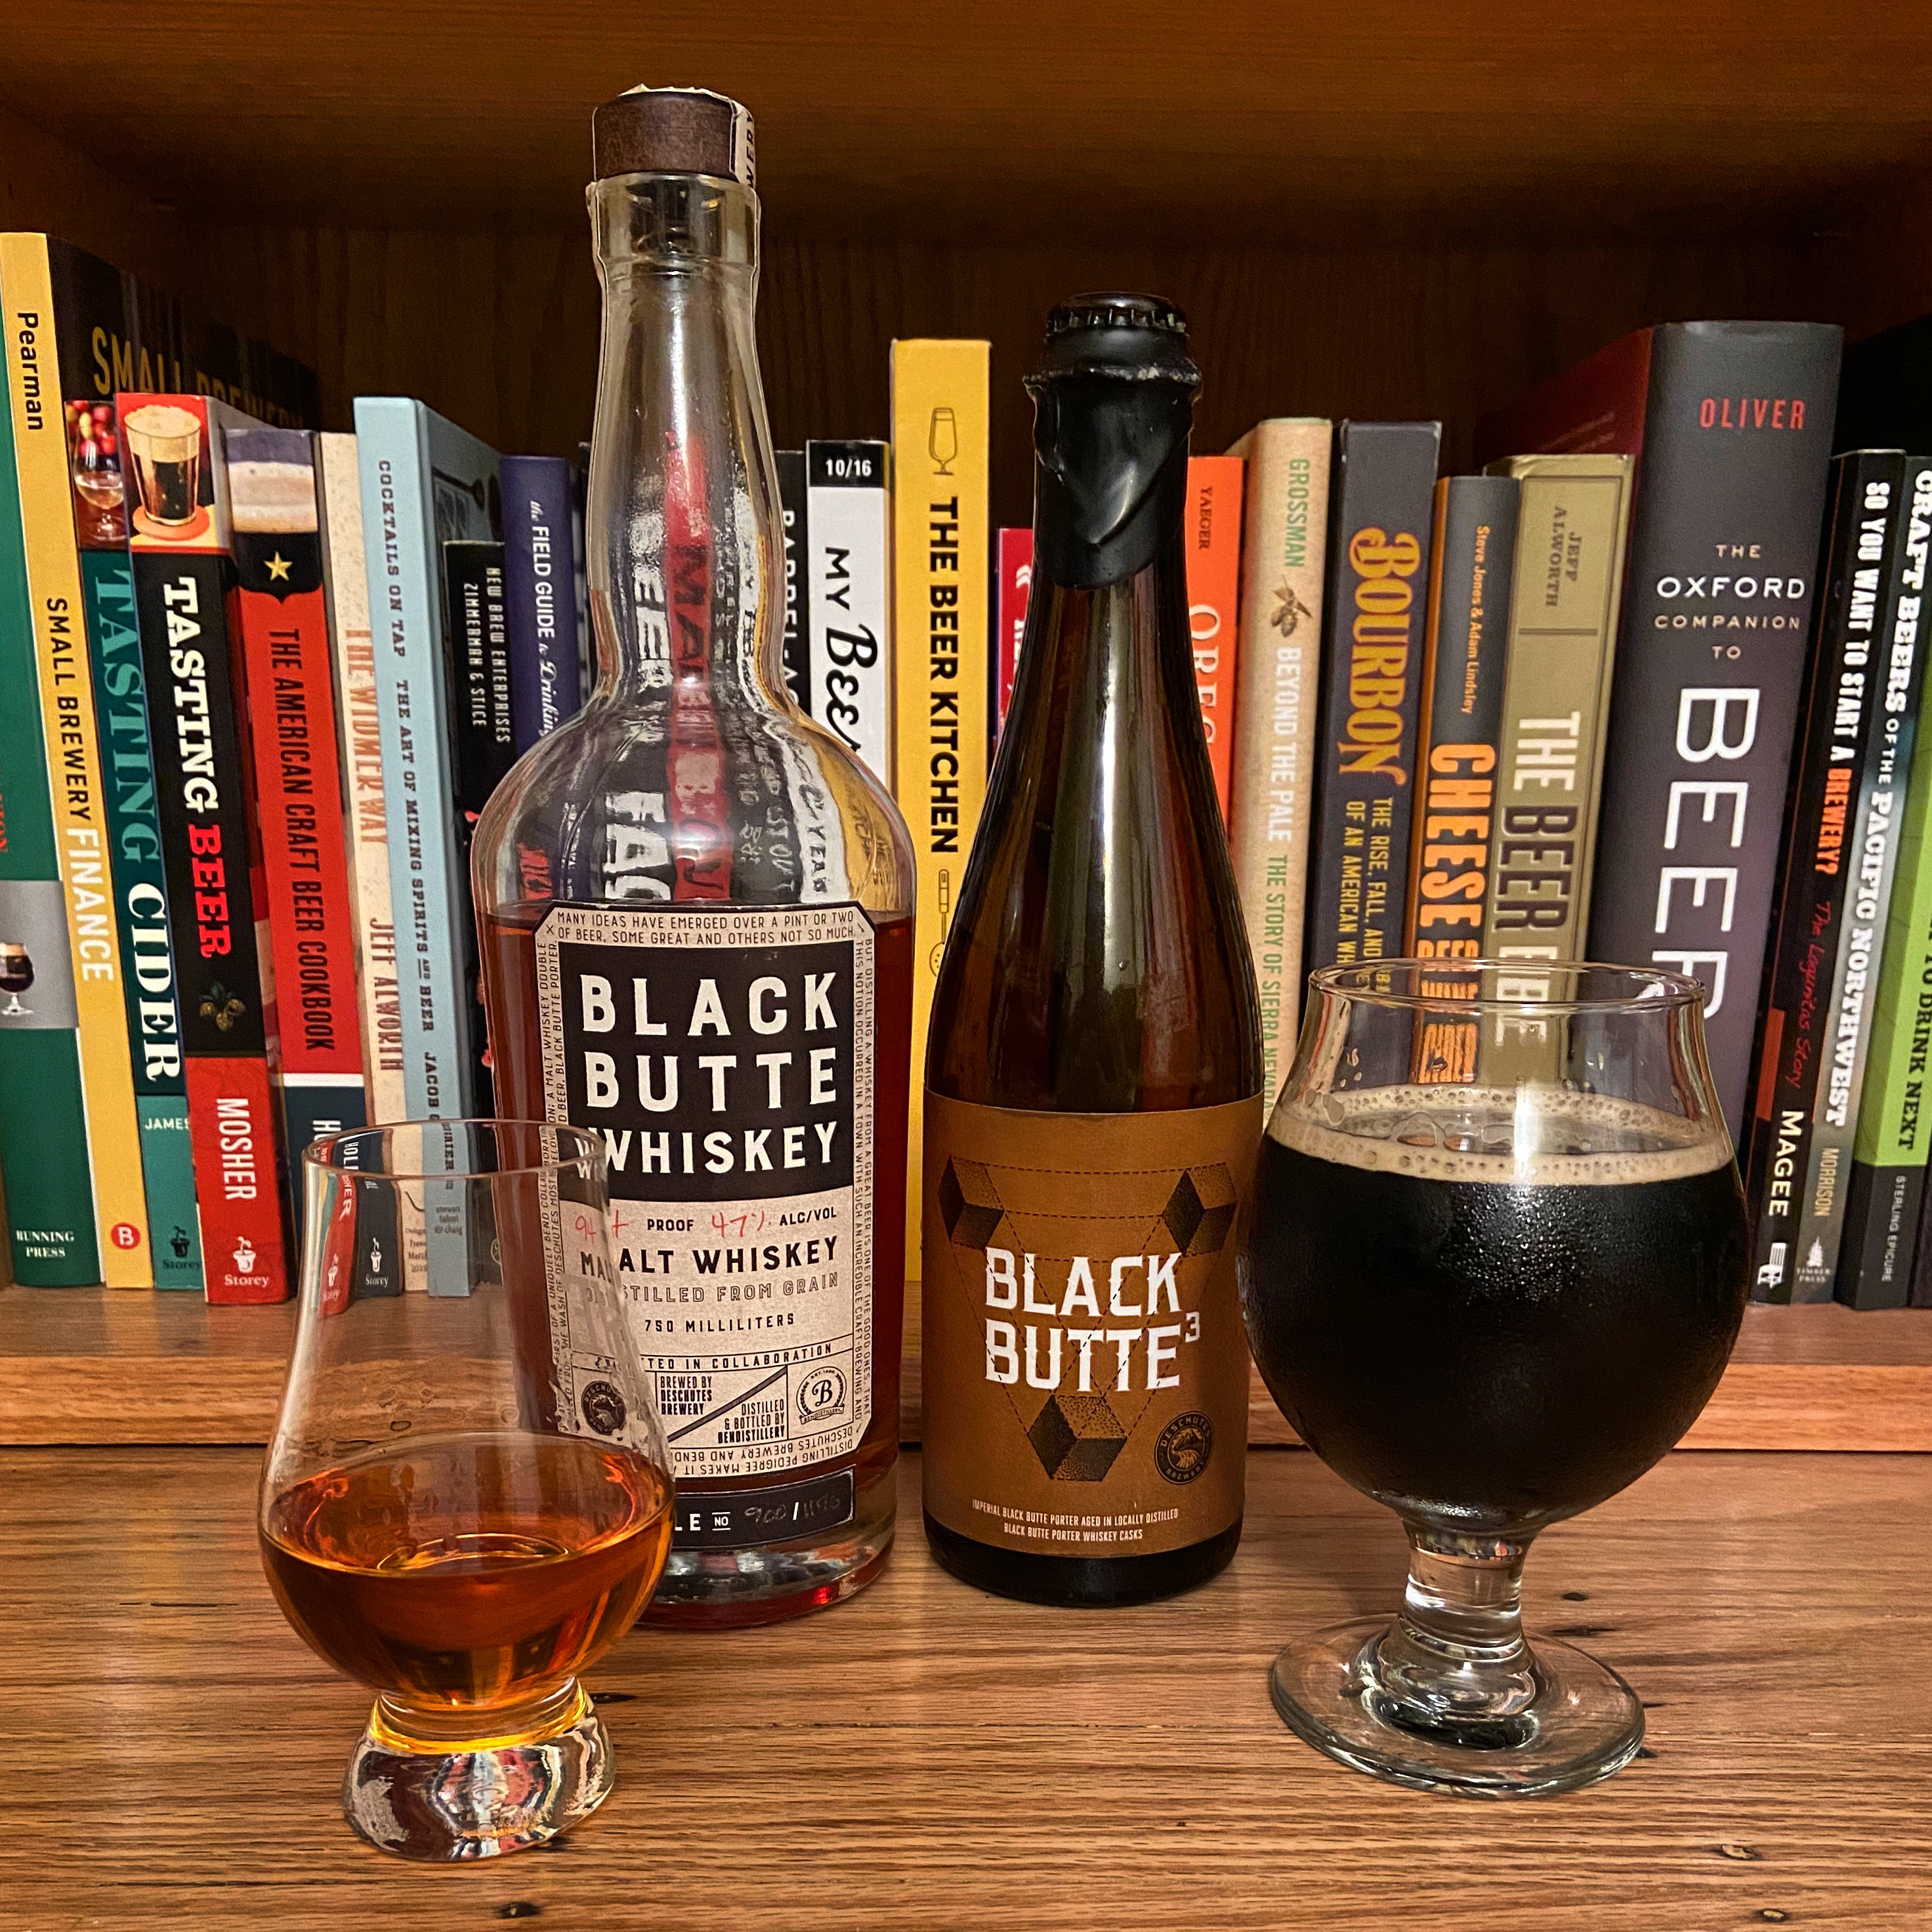 A bottle of Black Butte³ and paired with a dram of Black Butte Whiskey. This is a cask share between Deschutes Brewery and Bend Distillery (Crater Lake Spirits). Really digging the Black Butte³ that was aged in former Black Butte Whiskey barrels.